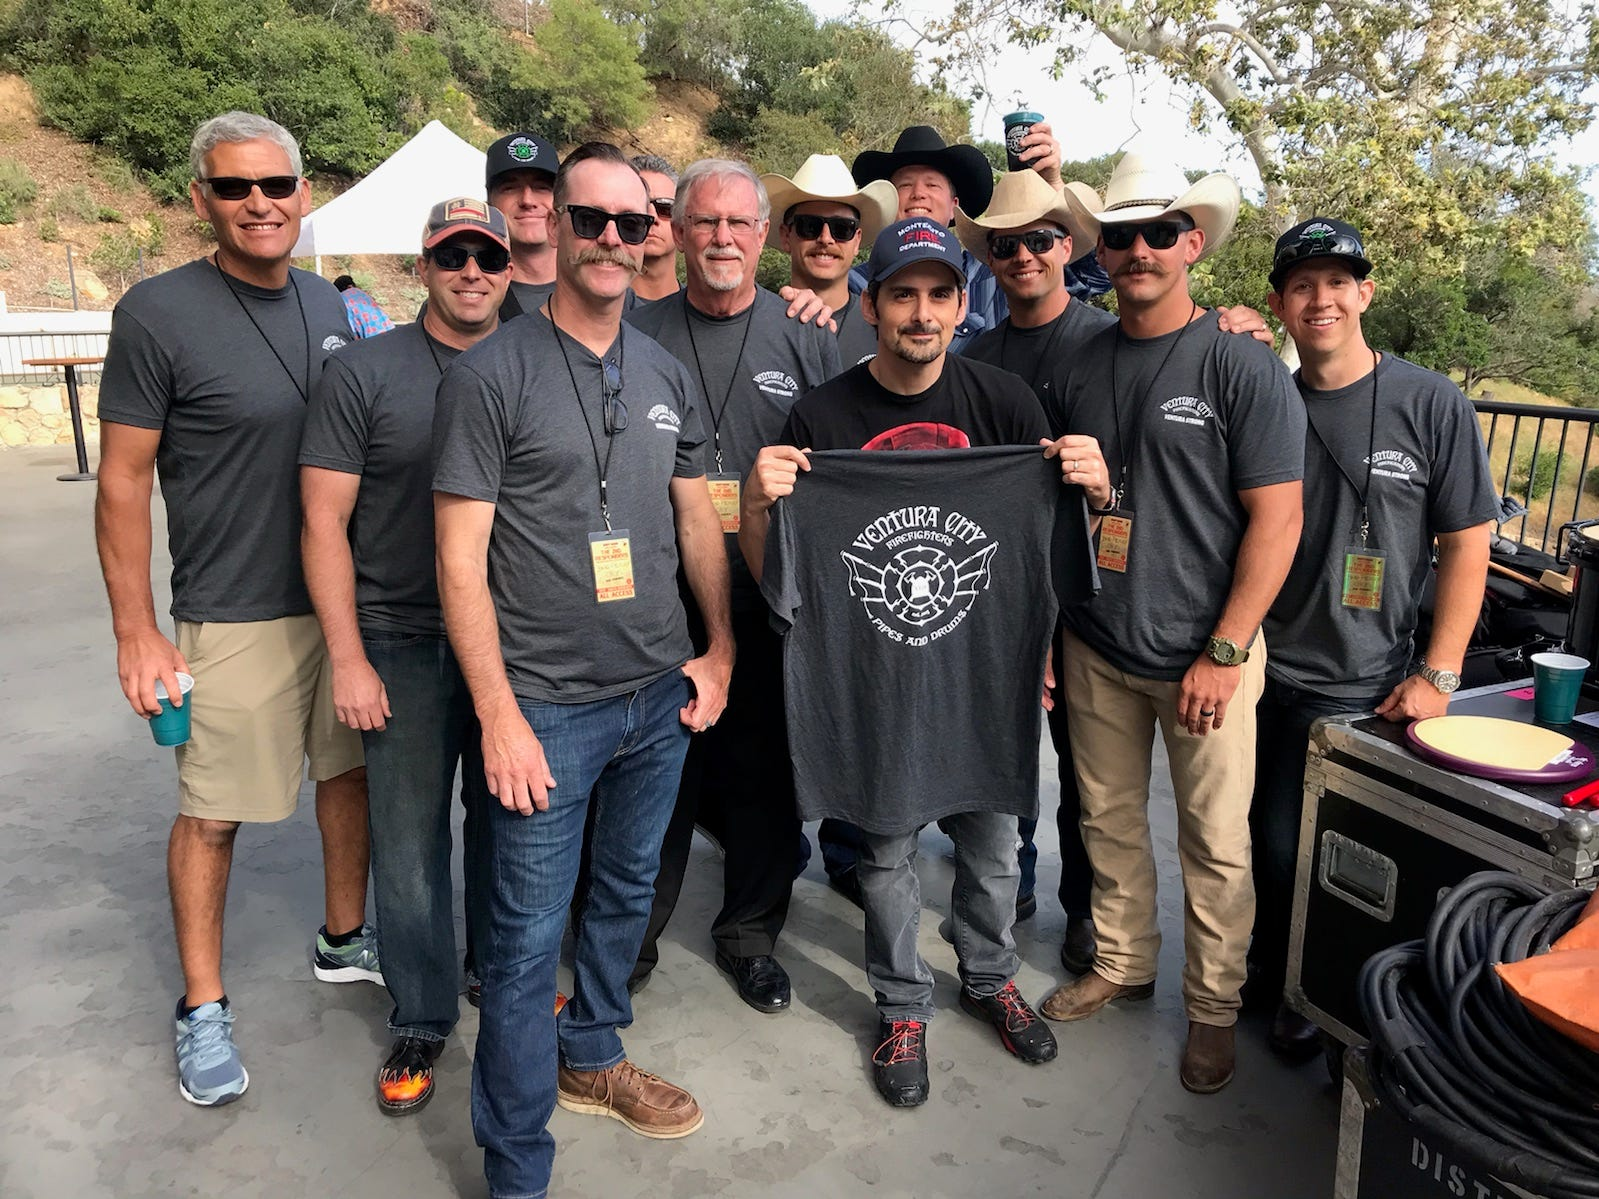 Brad Paisley, center, poses with the Ventura City firefighters pipe and drum band before he plays a benefit show May 12, 2018, for victims of California wildfires and mudslides in Santa Barbara